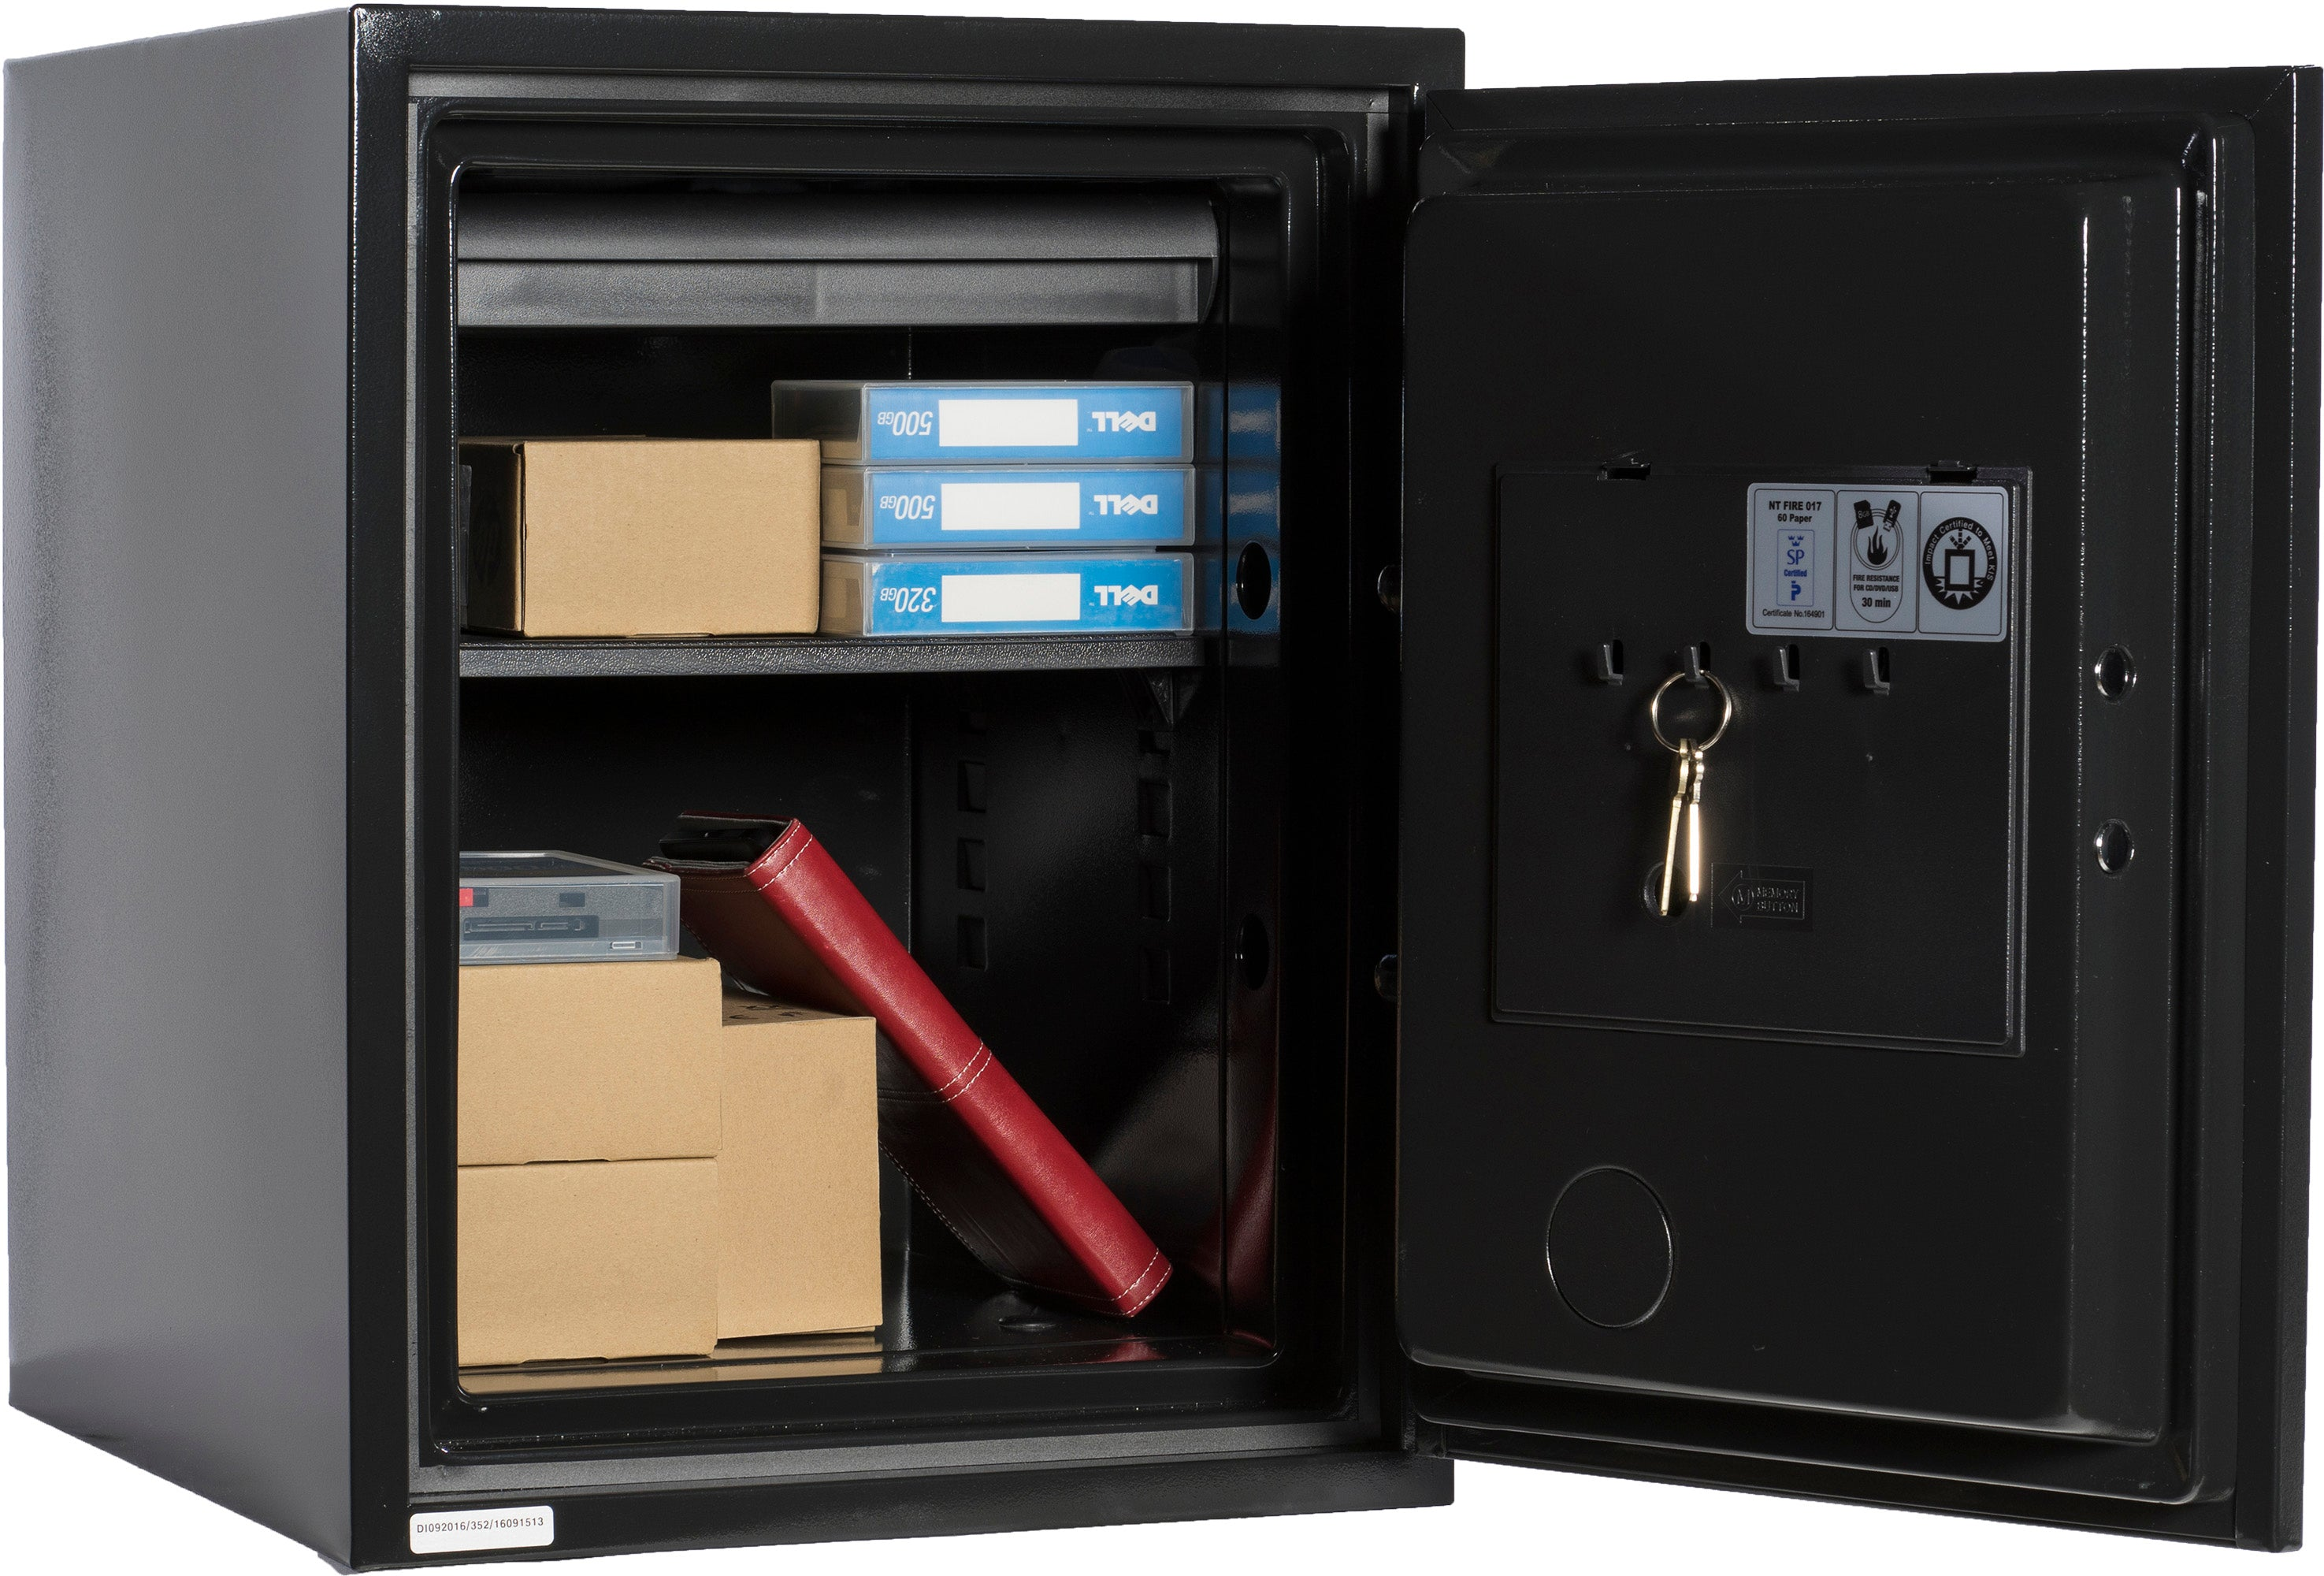 Olympian Digital Fire Resistant Safe 1.3 cu ft